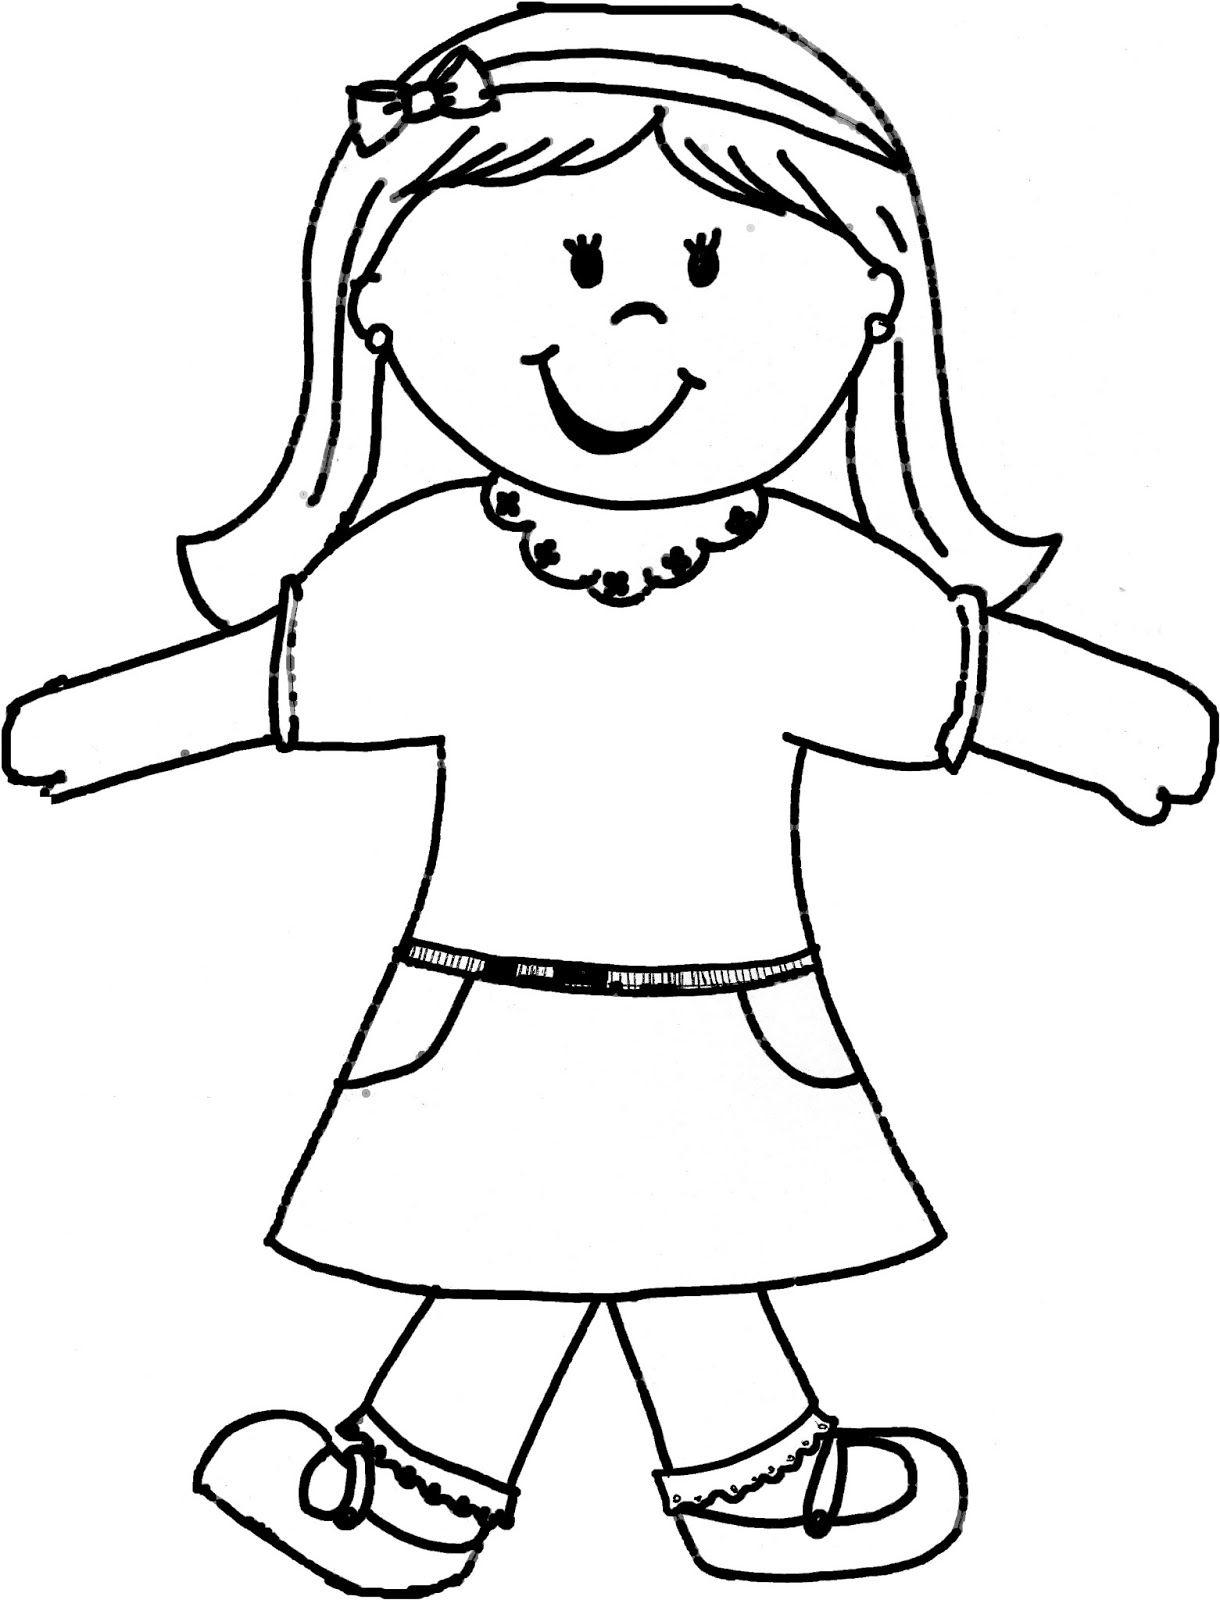 hight resolution of flat stanley clipart 1368292 license personal use